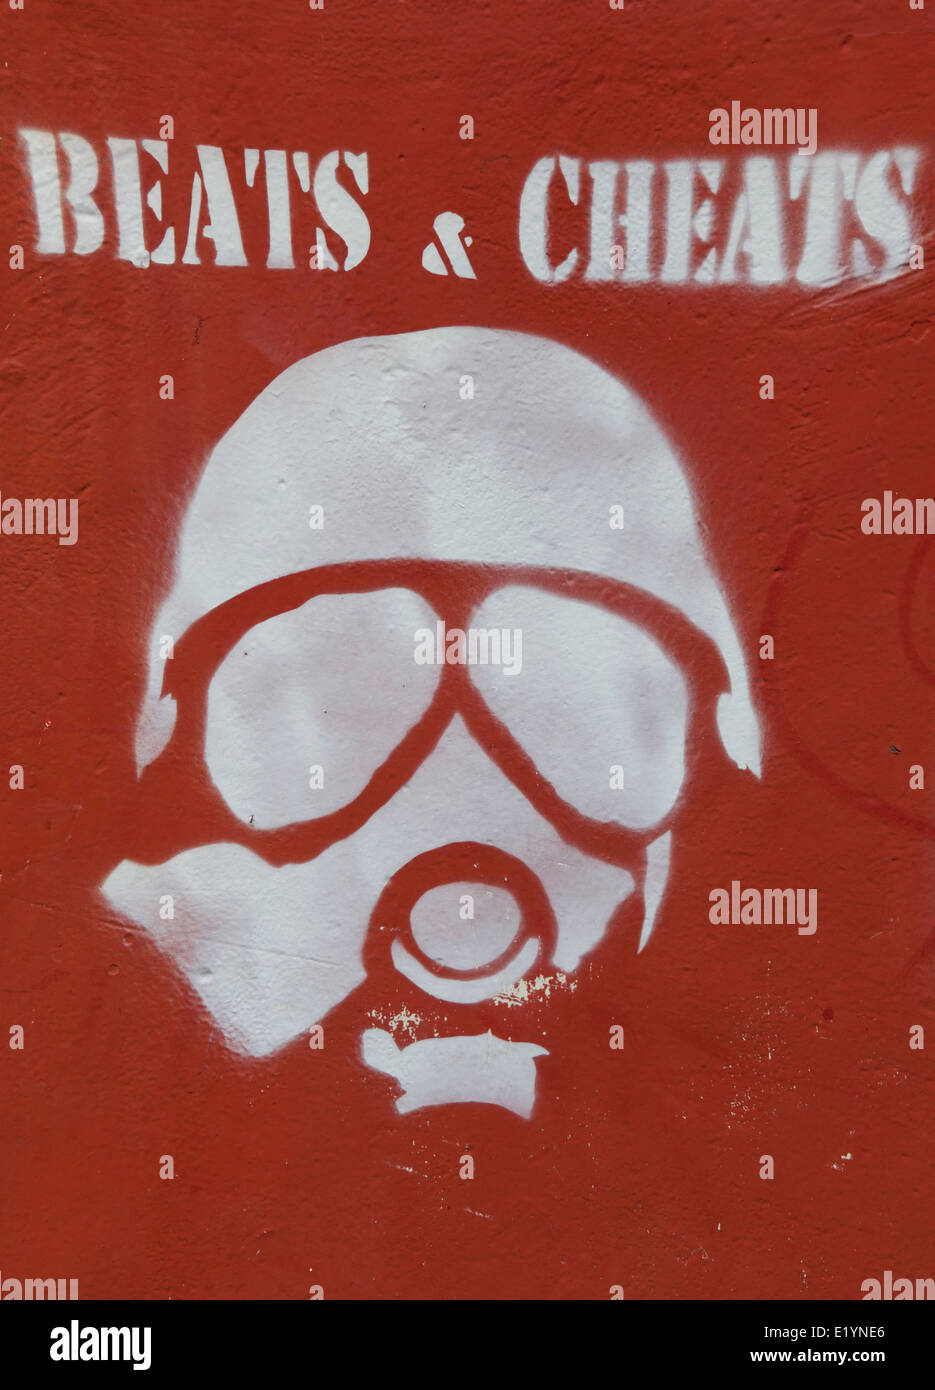 Beats & Cheats red stencil gas mask figure on red hoarding, Islington, Manchester, UK - Stock Image